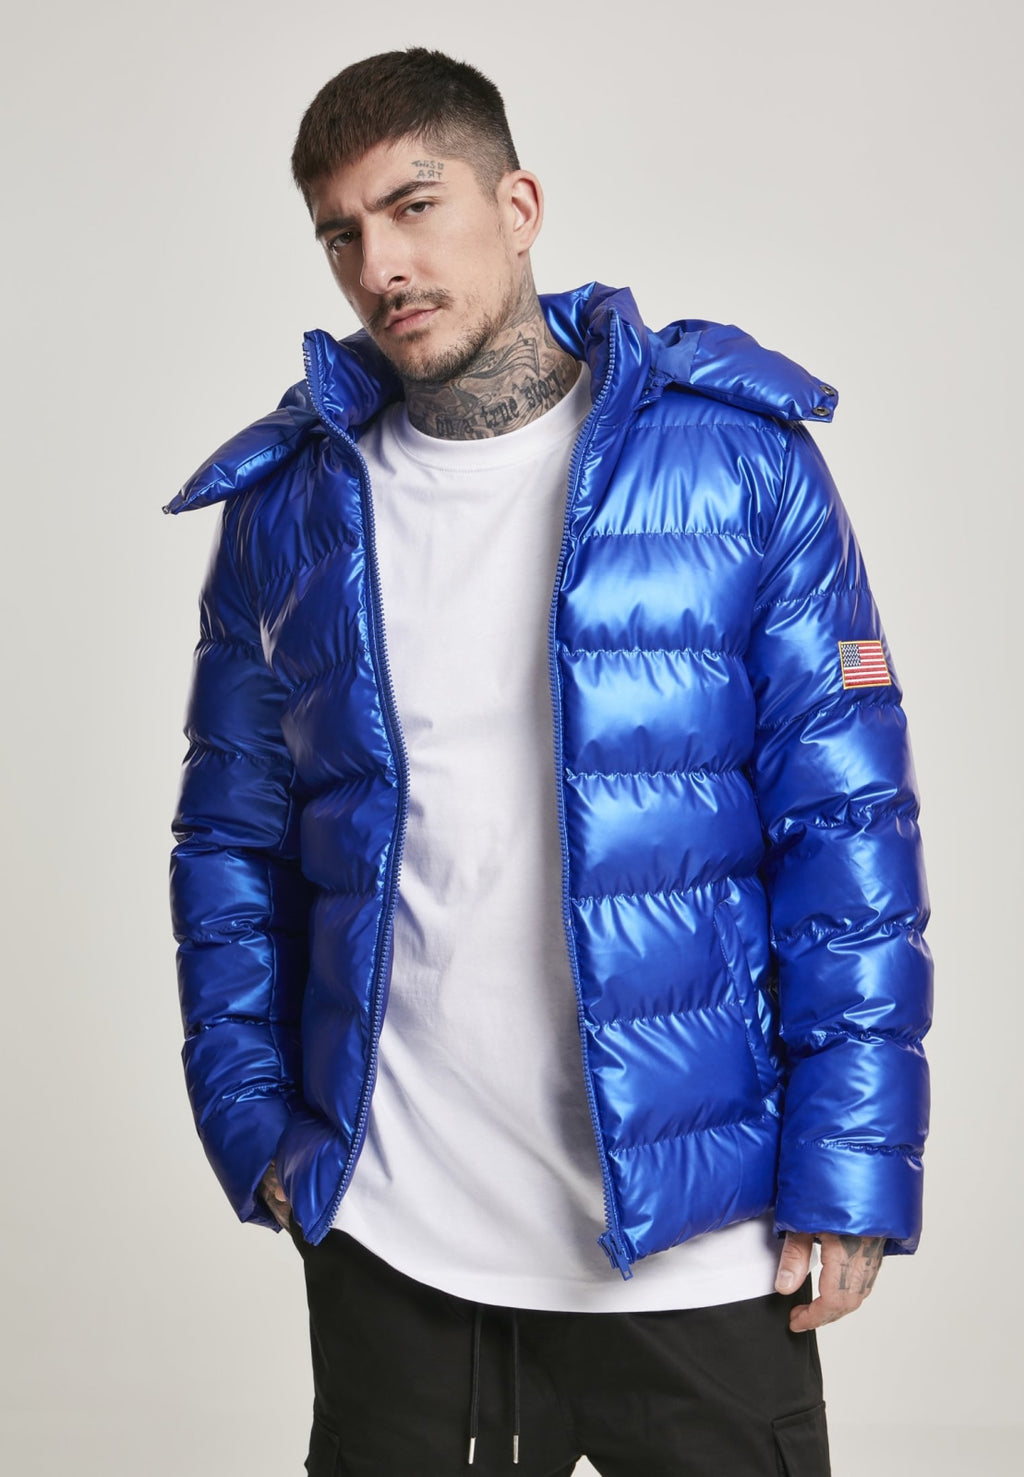 Nasa Insignia Metallic Puffer Jacket S / Blue Nasa Mister Tee